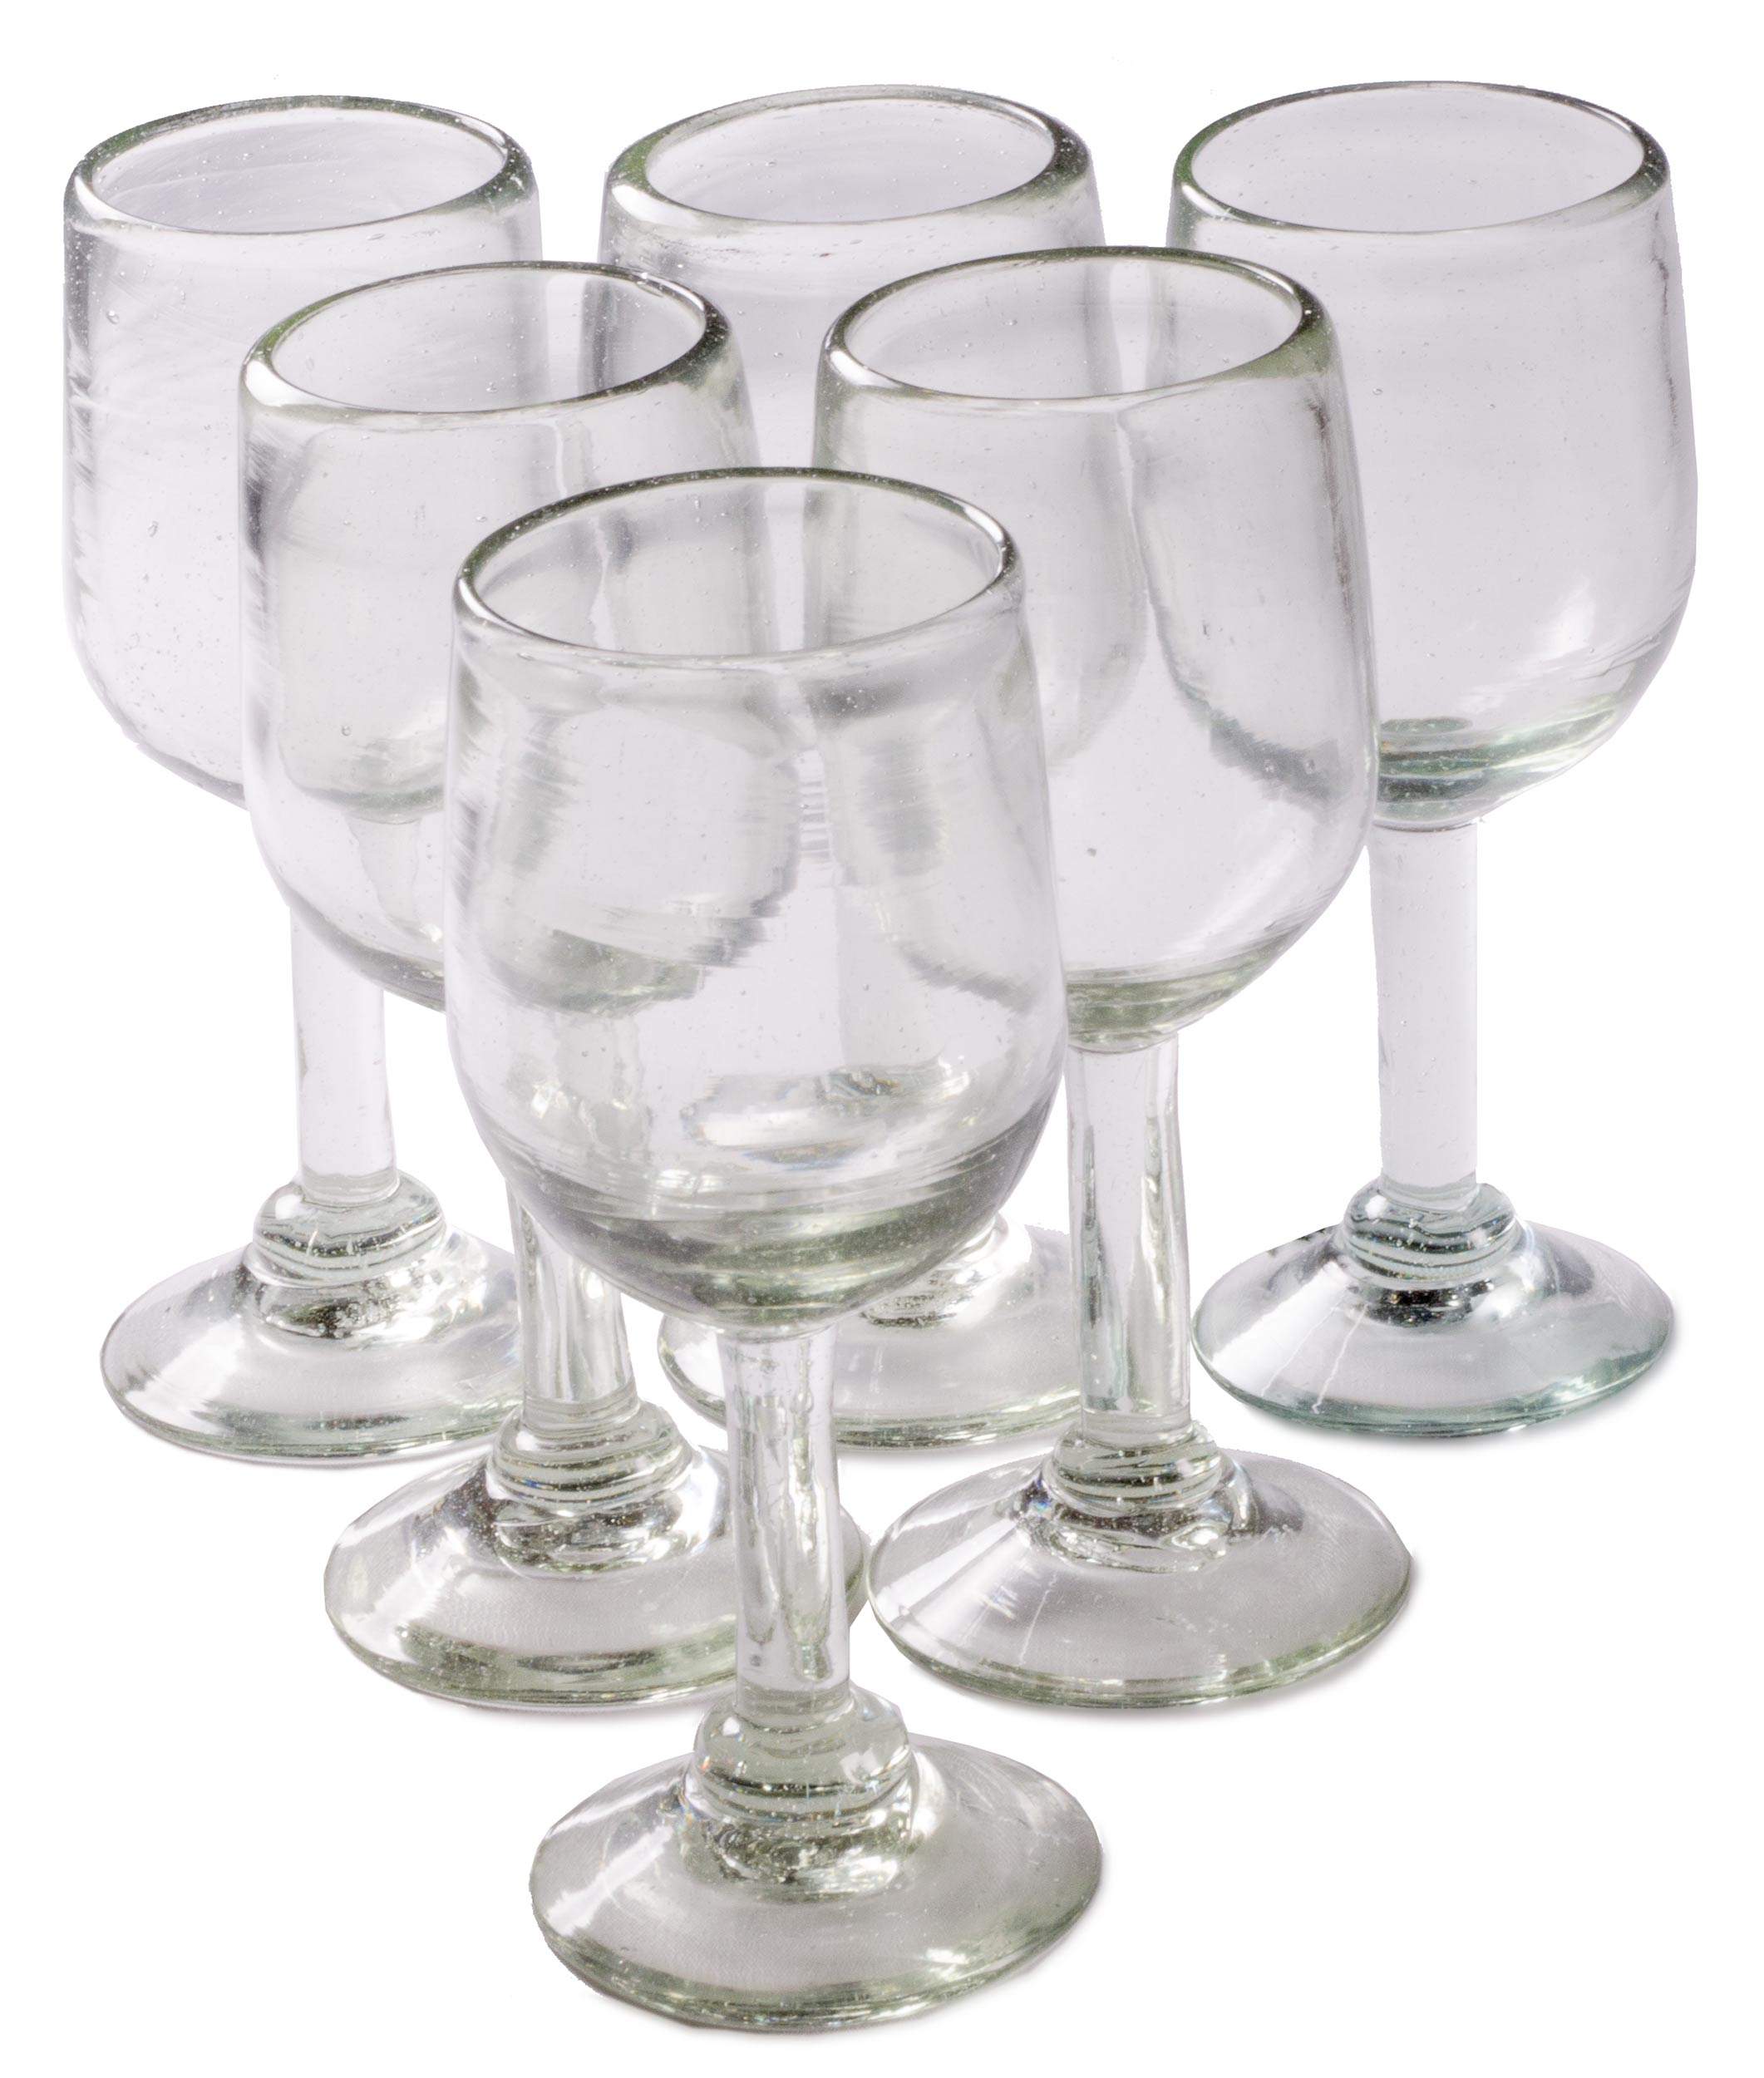 Orion Natural 11 oz Tulip Wine - Set of 6 - Orion's Table Mexican Glassware